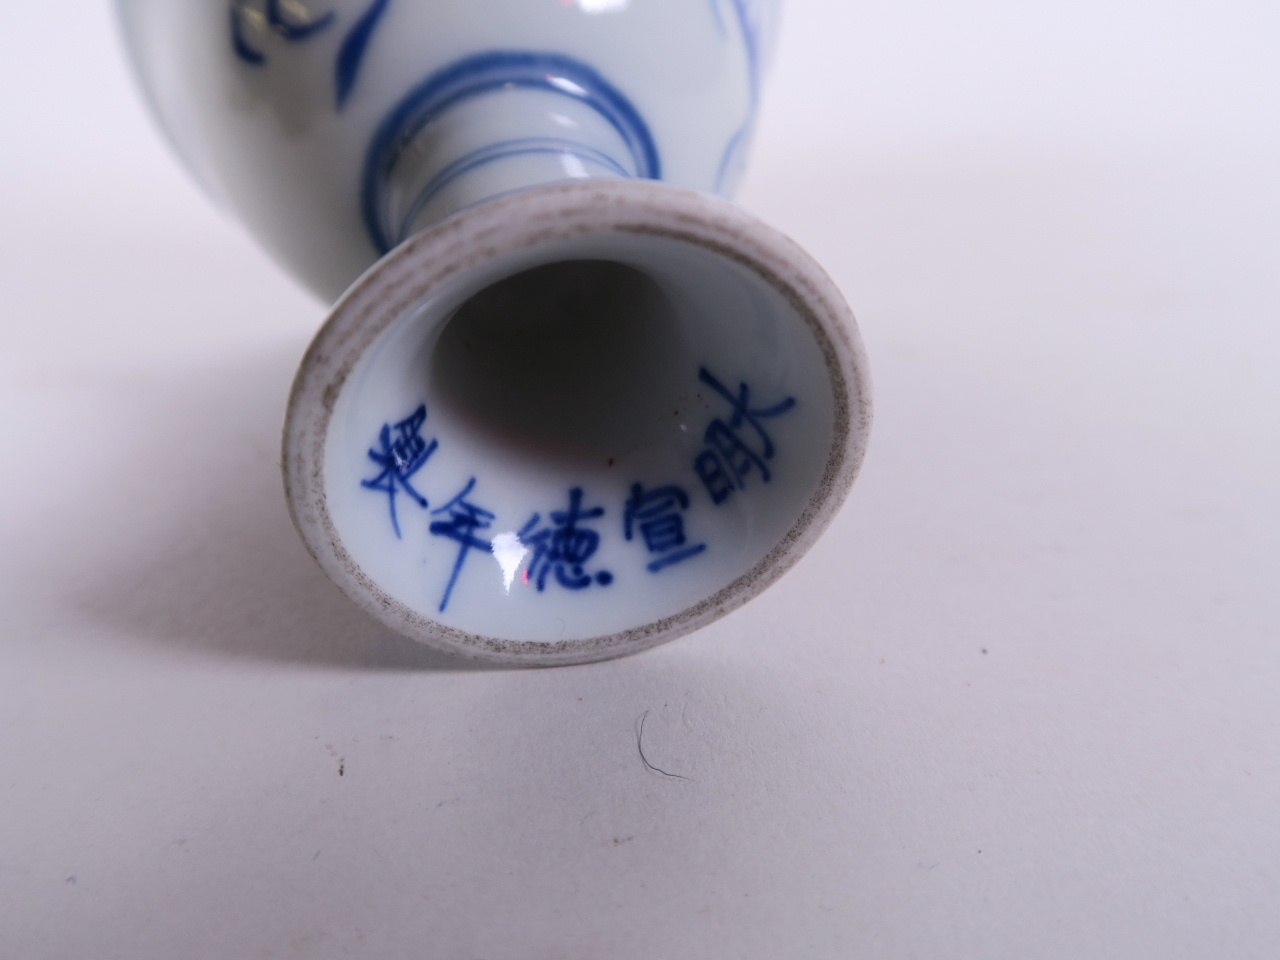 Lot 57 - A Chinese blue and white stem cup decorated with a dragon chasing the flaming pearl, 6 character